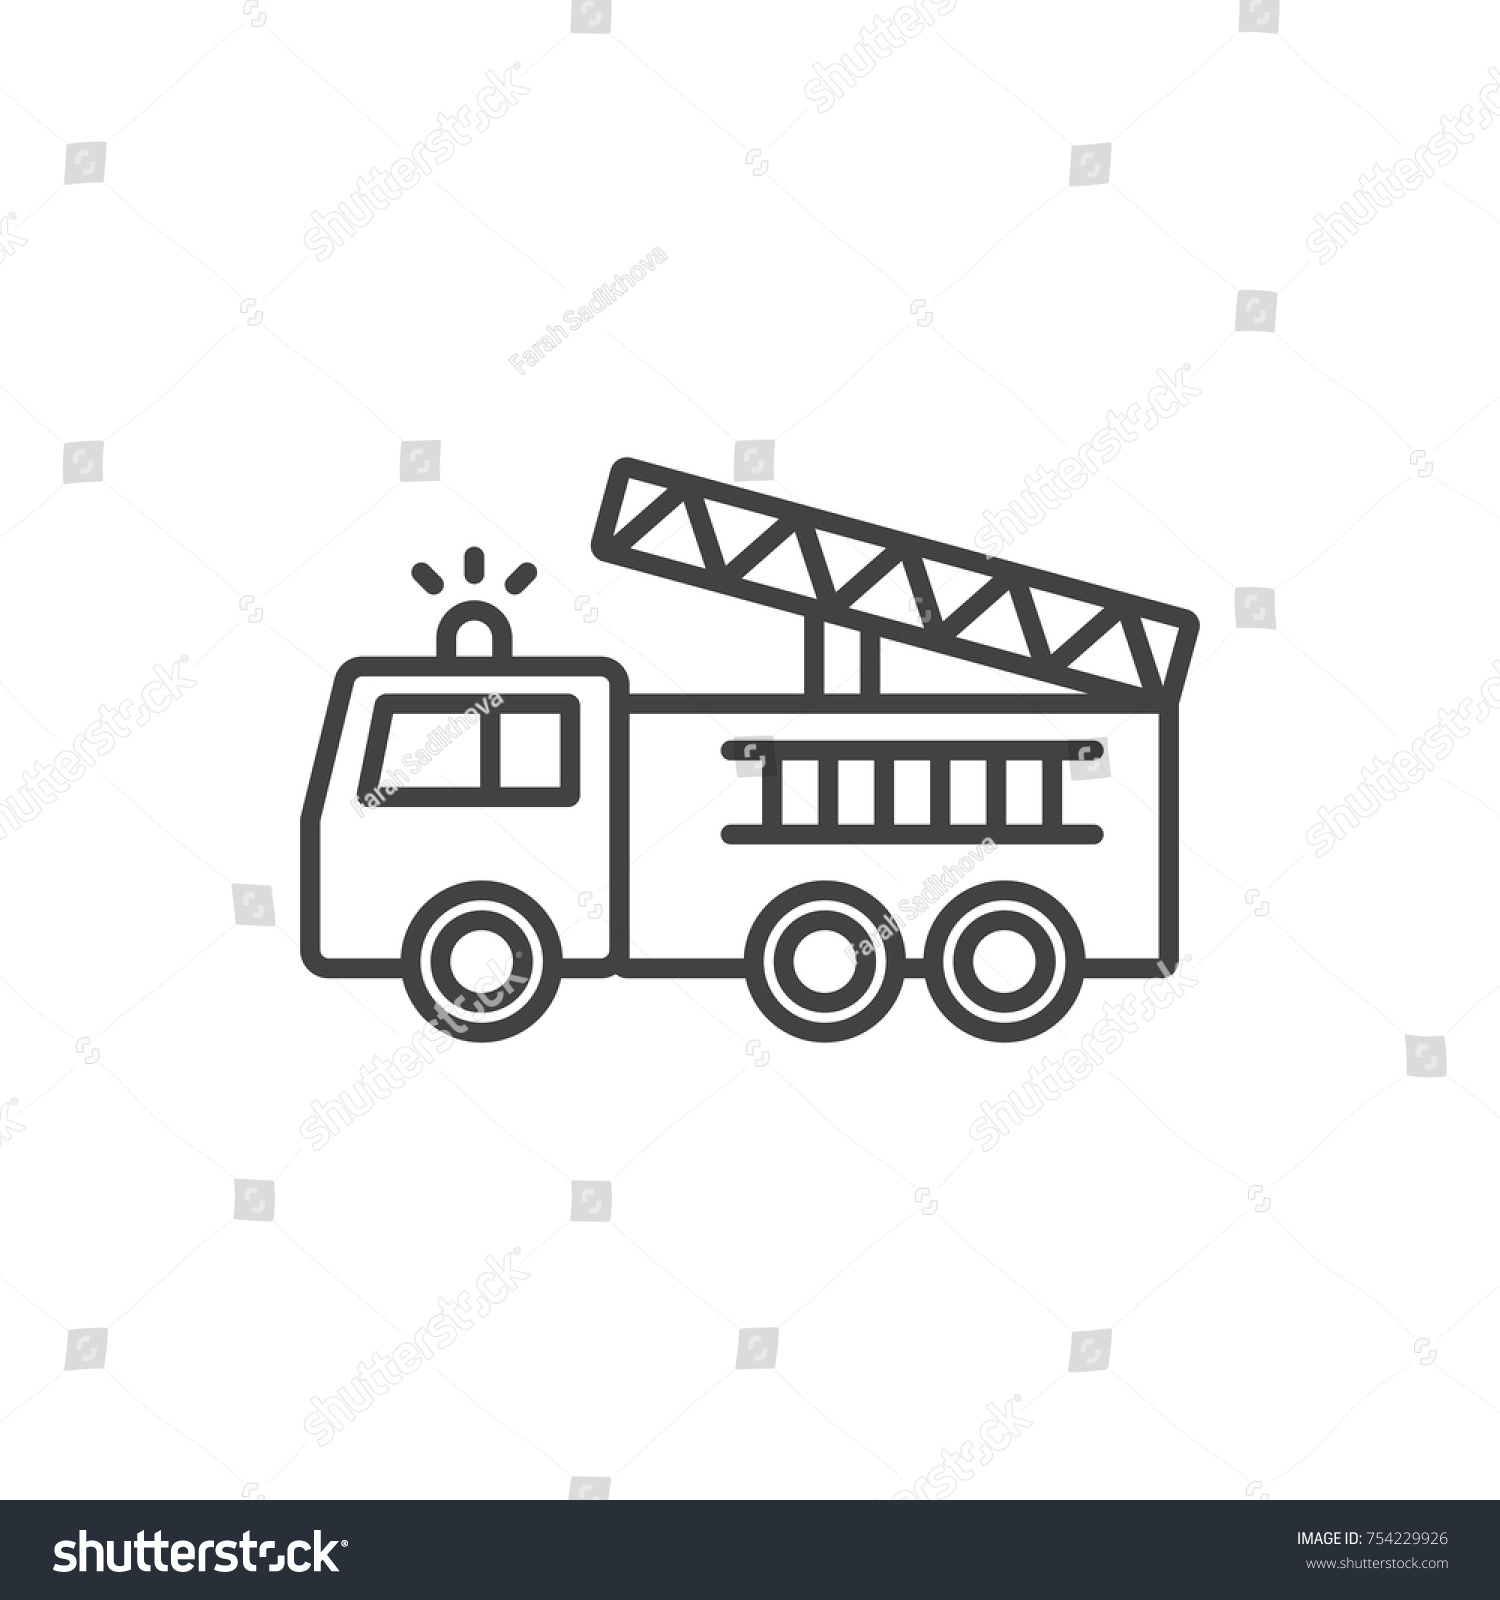 Fire Truck Line Icon Stock Vector Royalty Free 754229926 Engines Diagram Traffic Cone